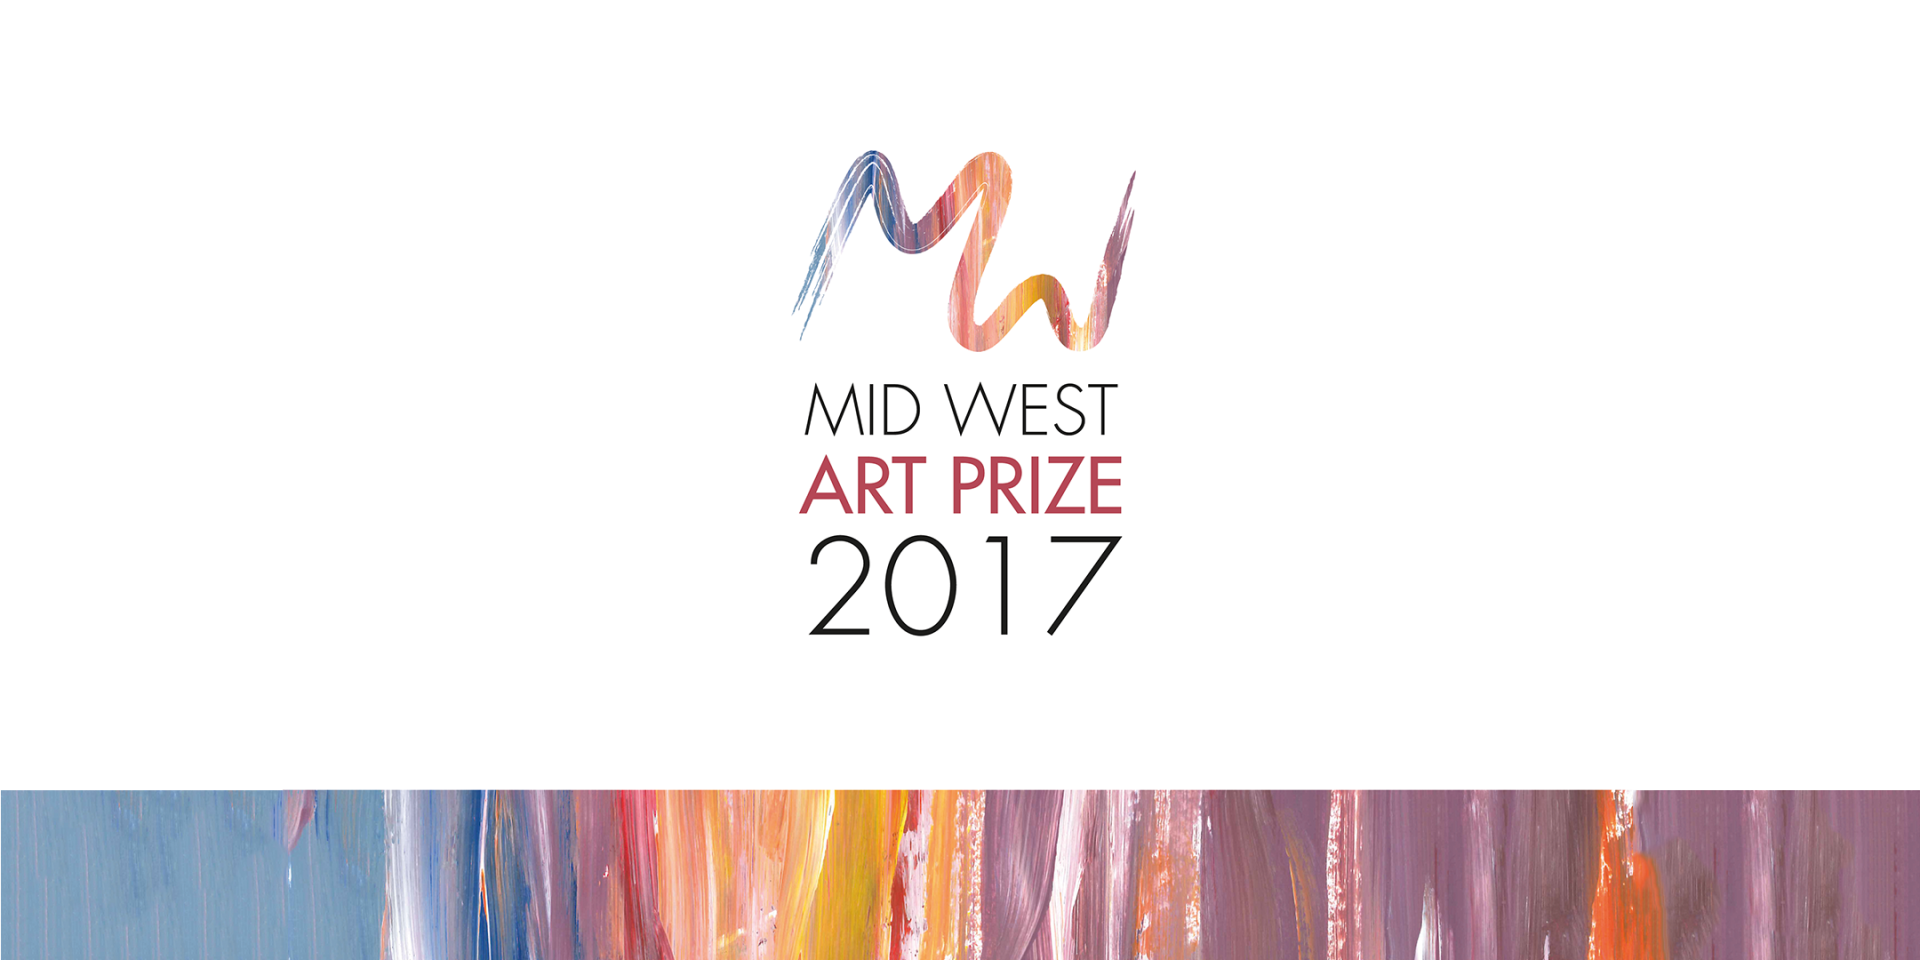 Mid West Art Prize 2017 » City of Greater Geraldton Regional